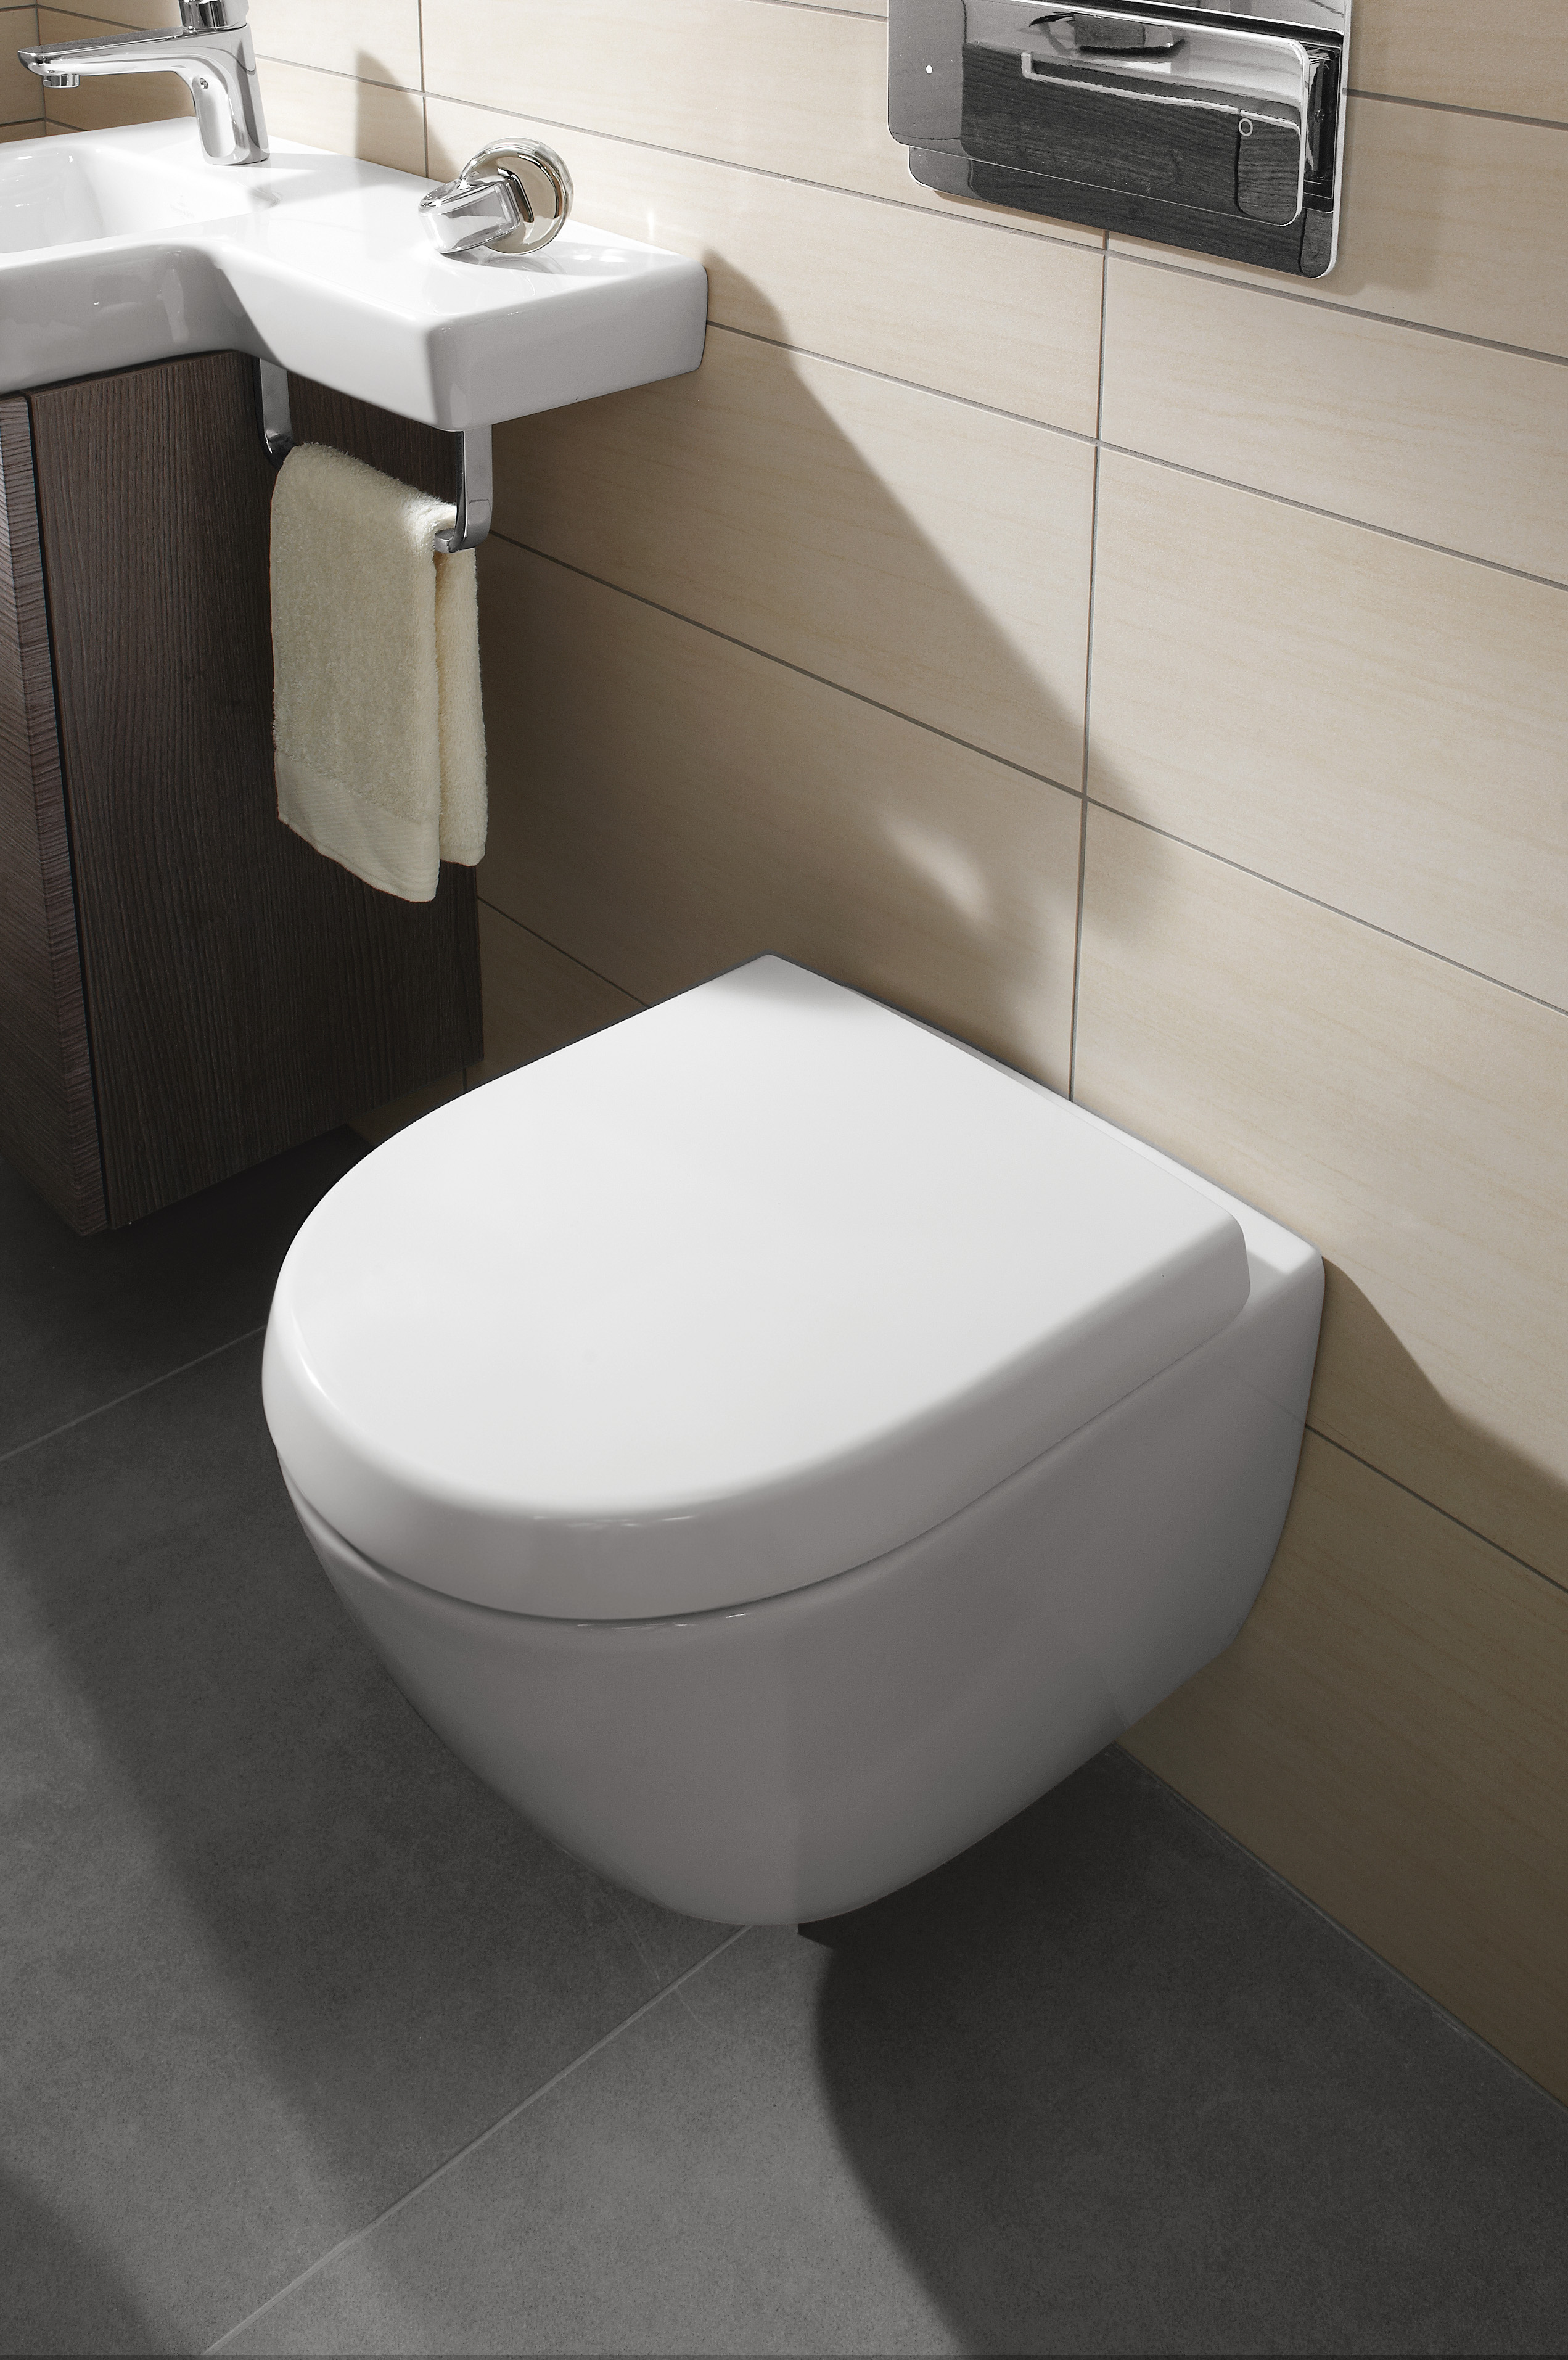 Subway 2.0 WC, Abattants de toilette, Abattants de toilette Compact